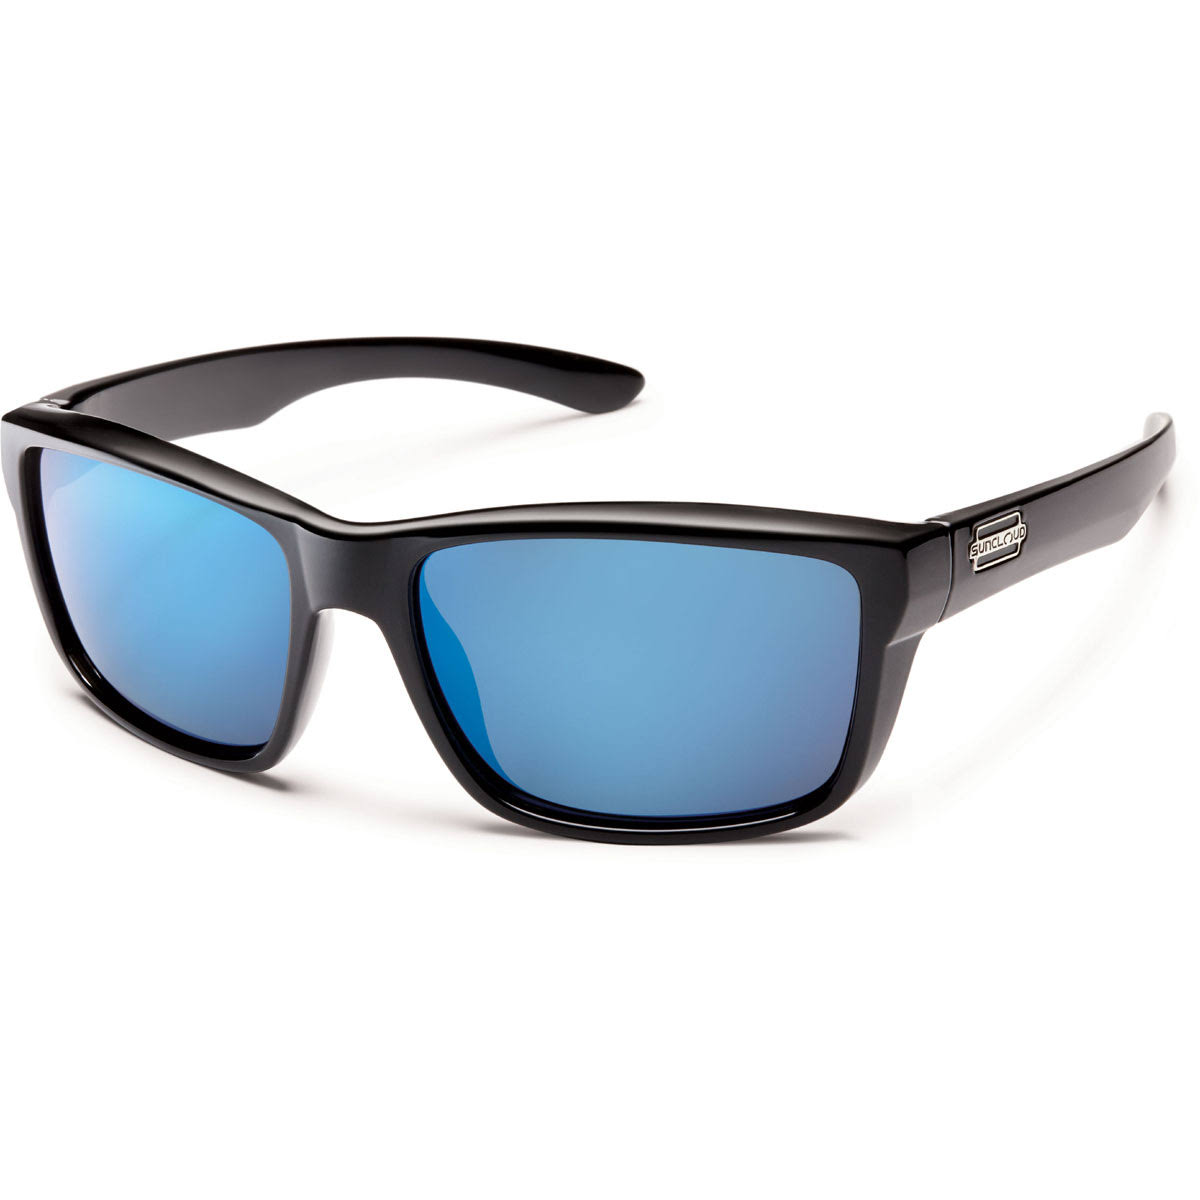 Suncloud Mayor Polarized Sunglass - Polycarbonate Blue Lens, Black Frame